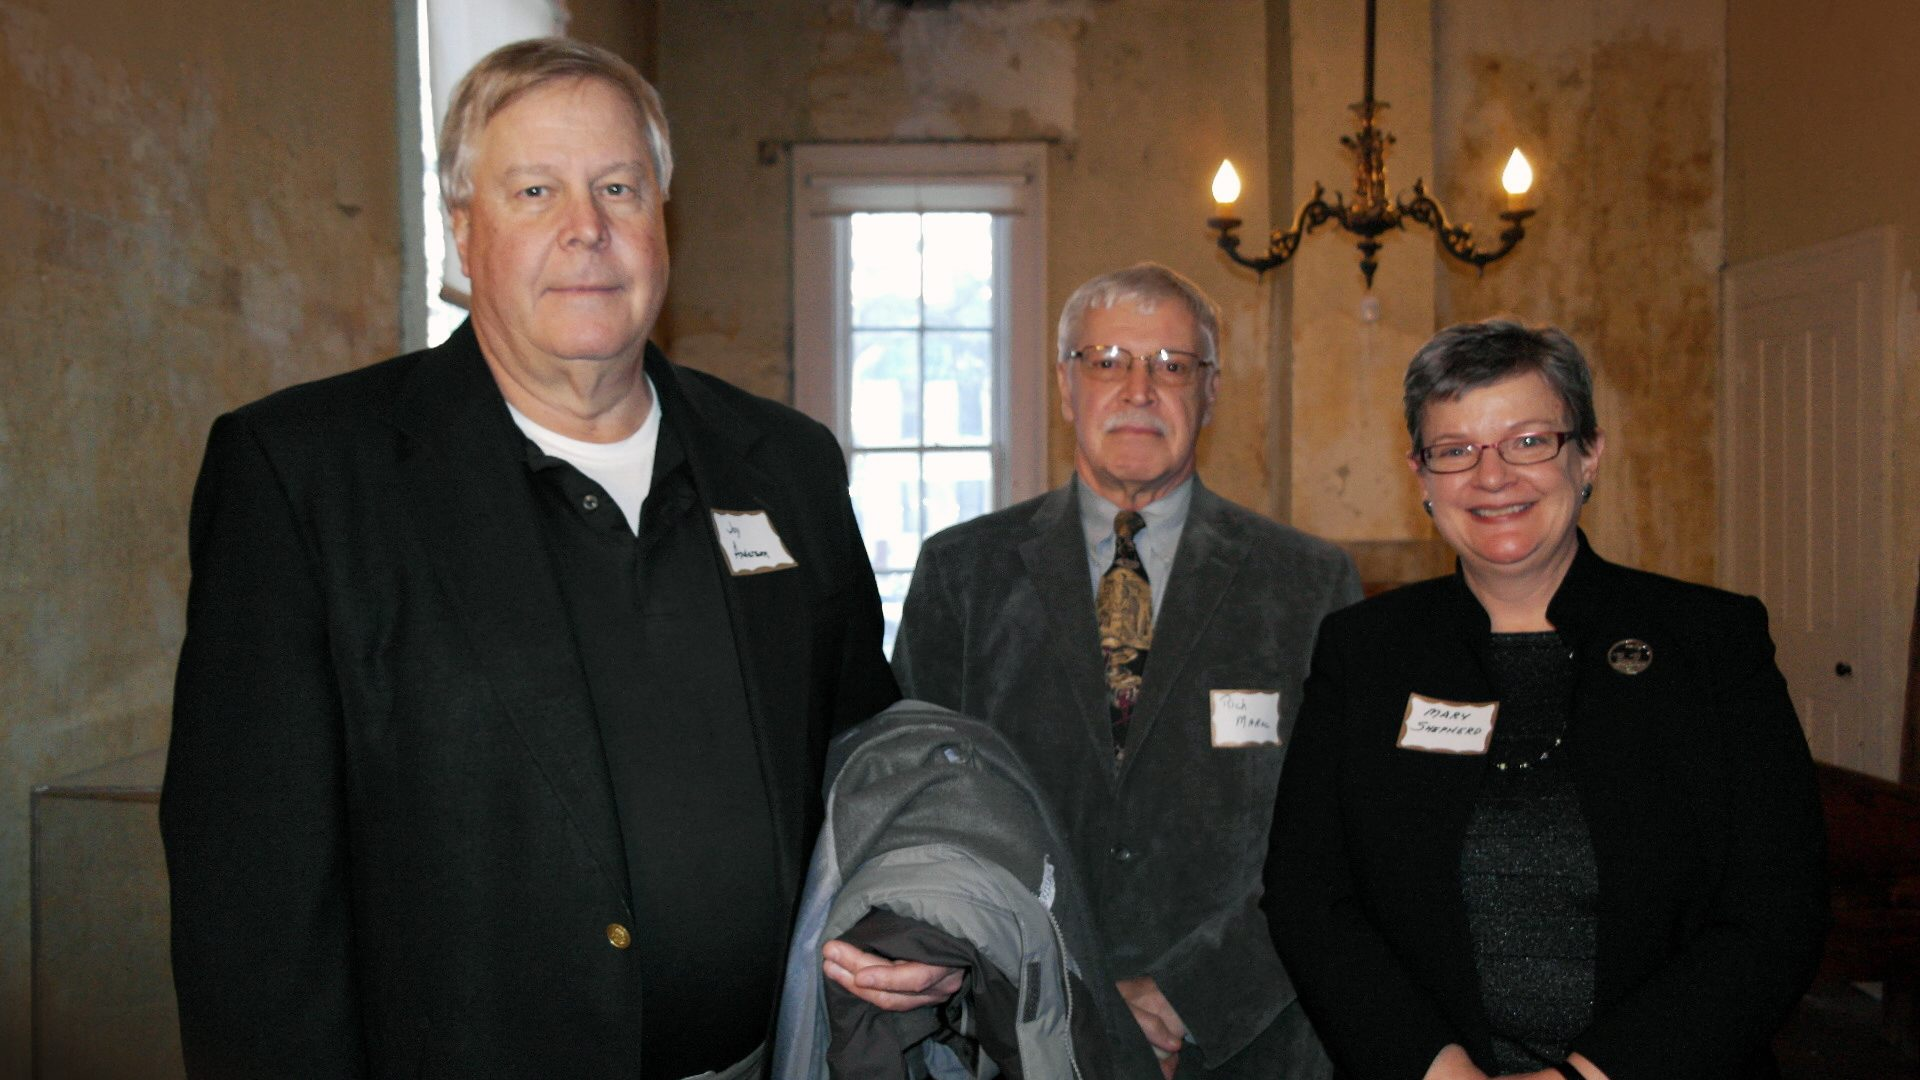 Jon Anderson – member of the Abraham Lincoln Association; Richard Monroe – member of the Abraham Lincoln Association; Mary Shepherd – member of the Abraham Lincoln Association